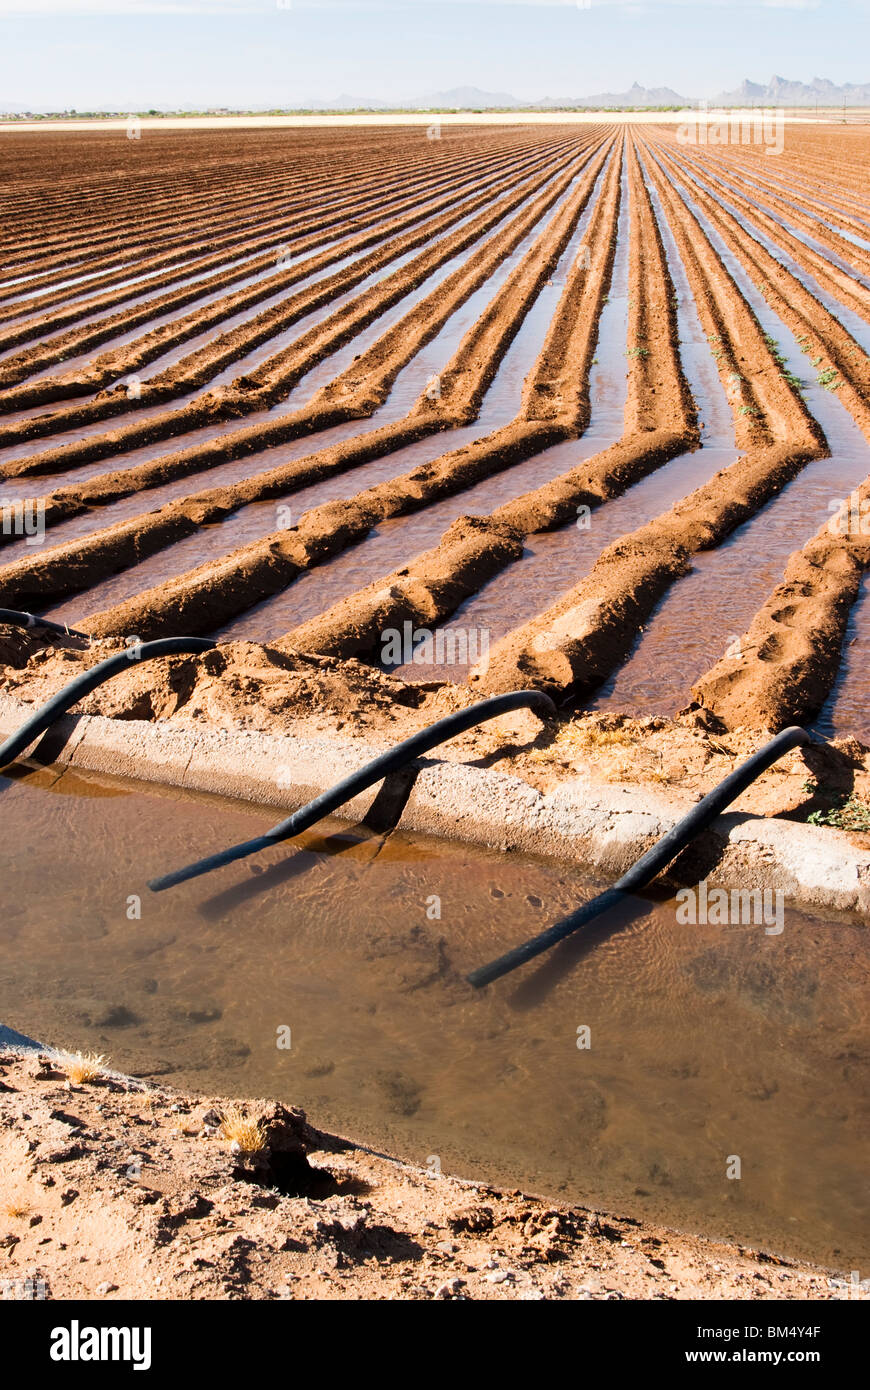 an irrigation canal and siphon tubes used to water a field in Arizona - Stock Image